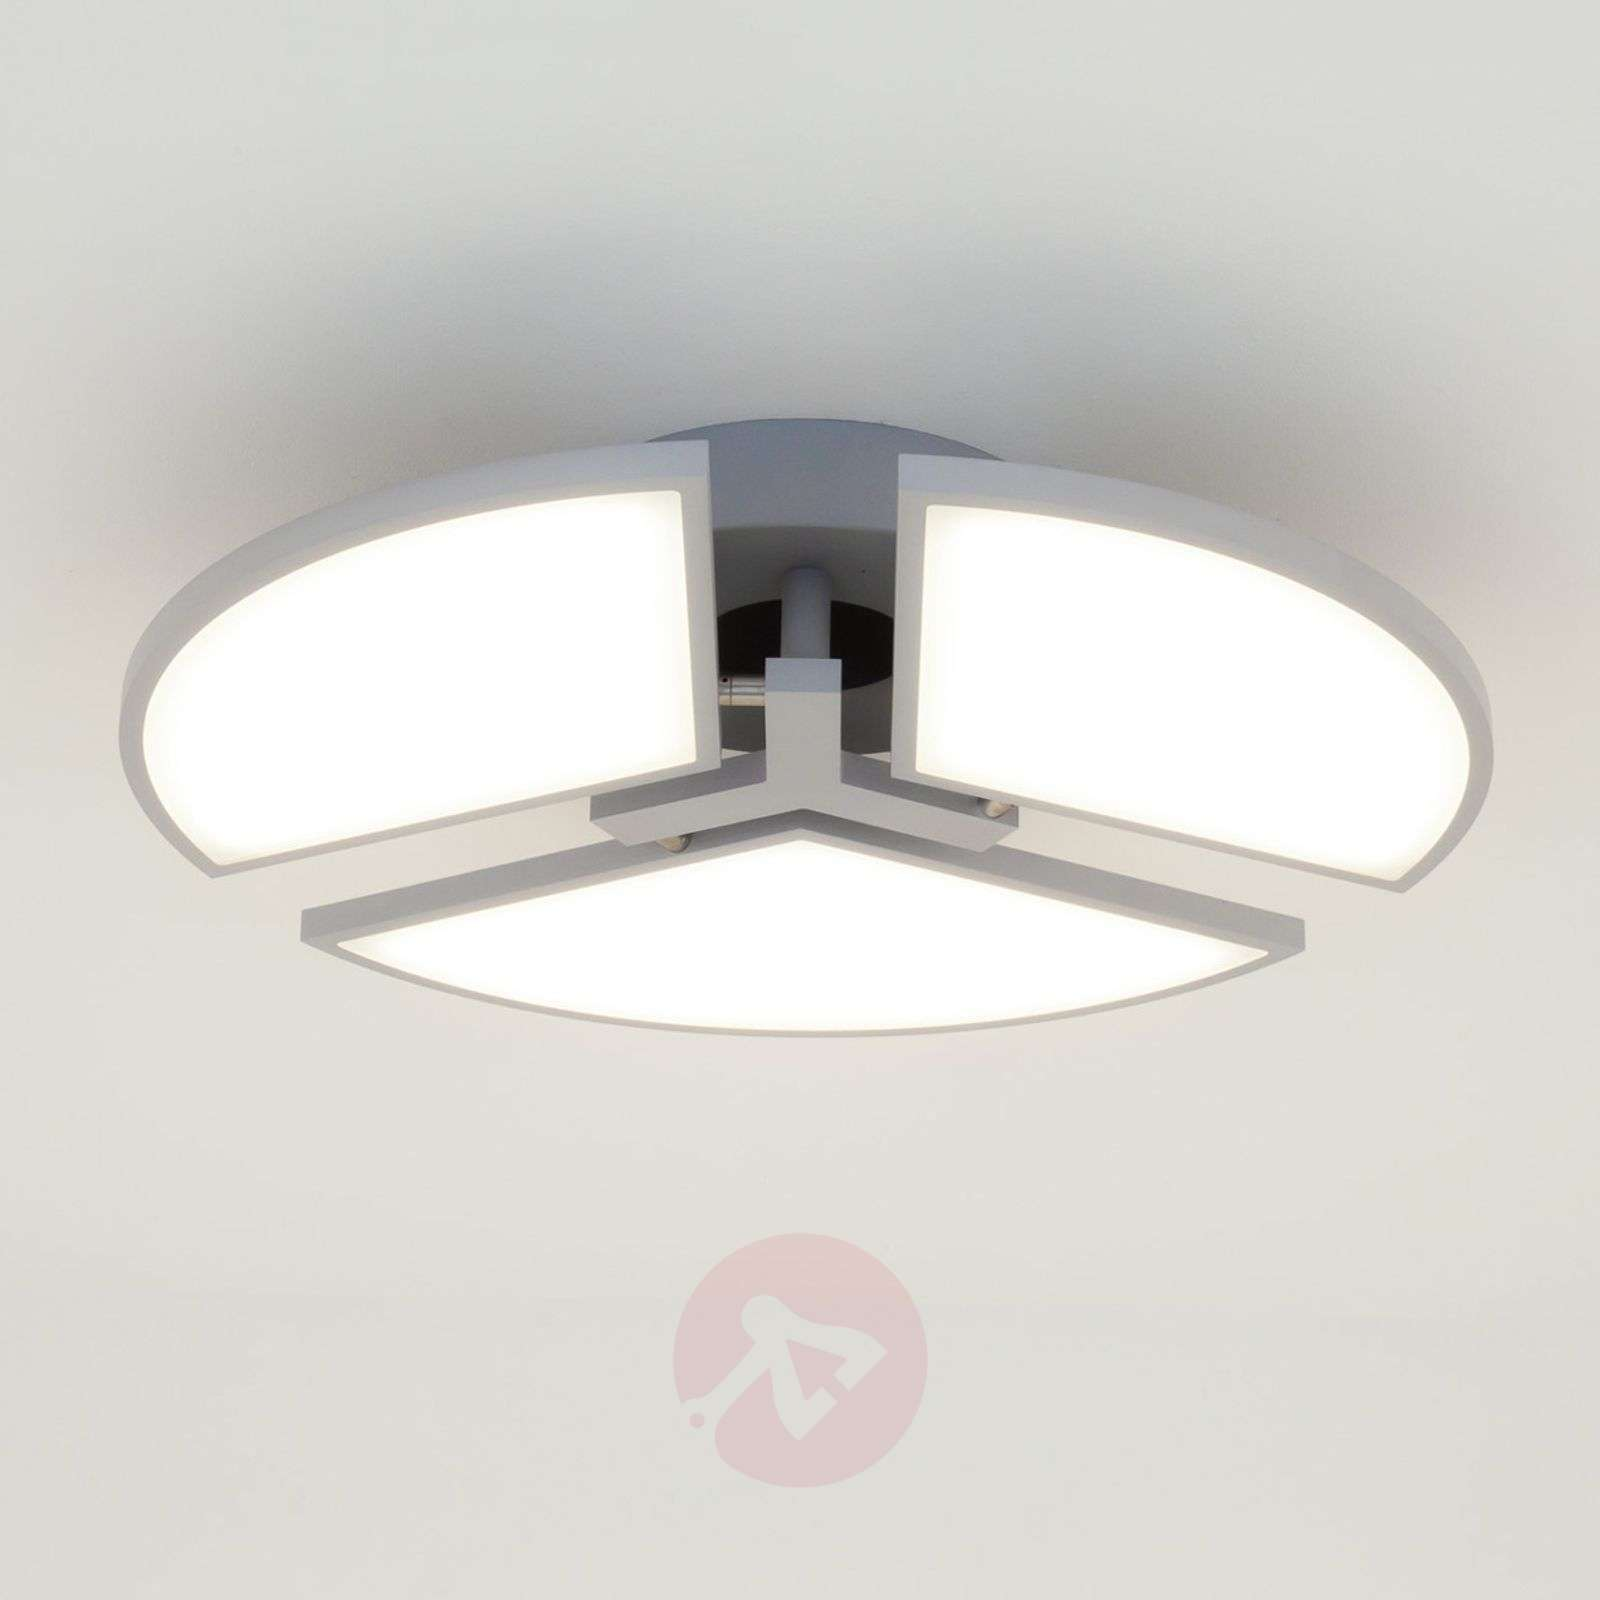 Compra l mpara led de techo aurela en dise o innovador for Lamparas led diseno